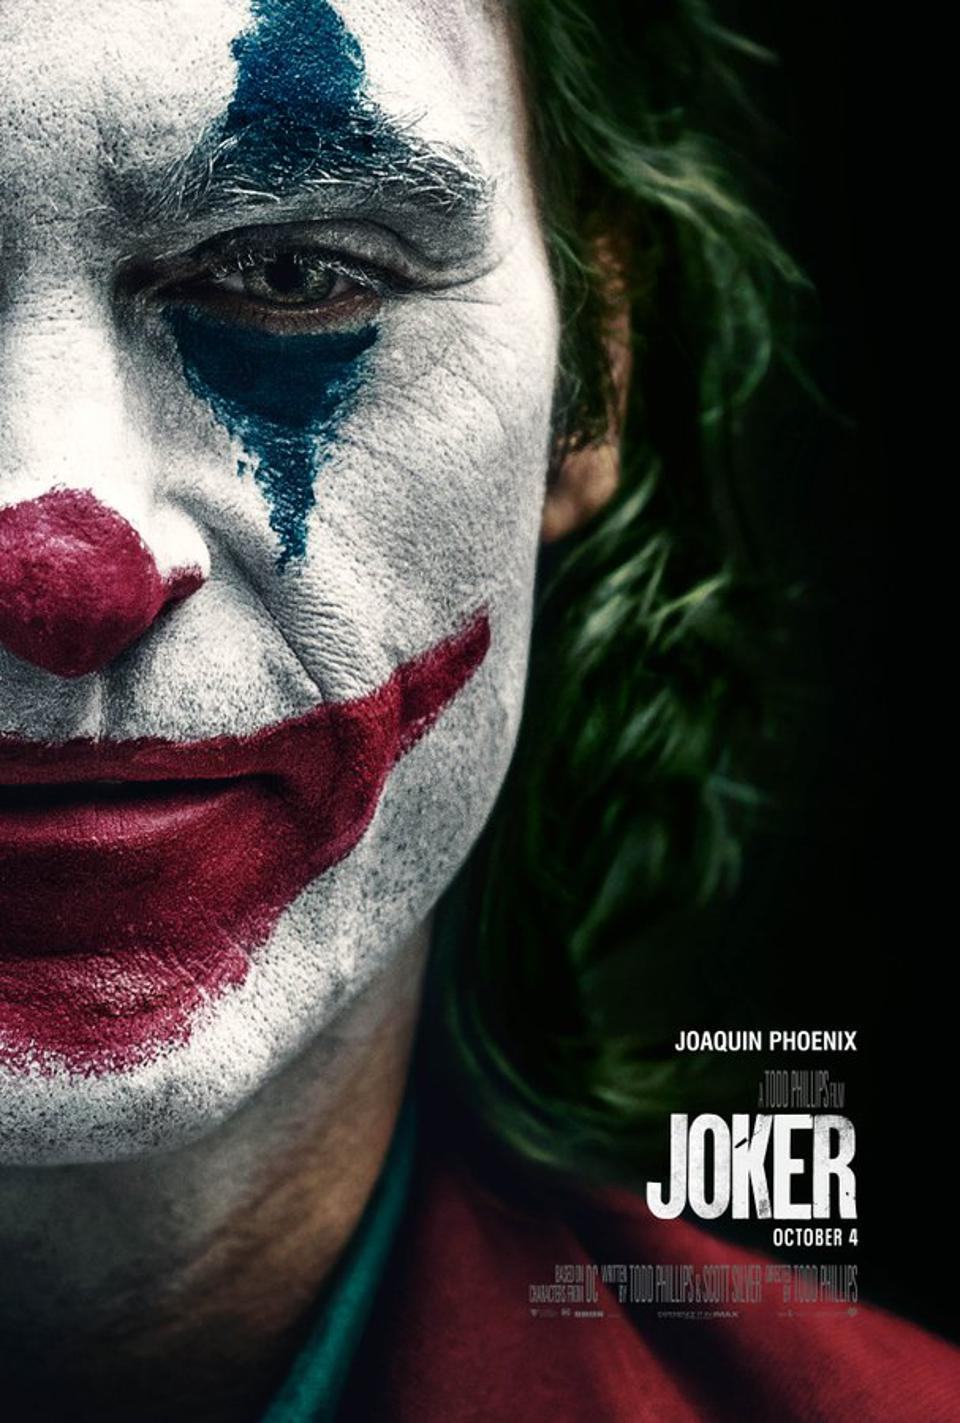 Why Joker Is Not Toxic And How Those Concerns About It Are Wrong